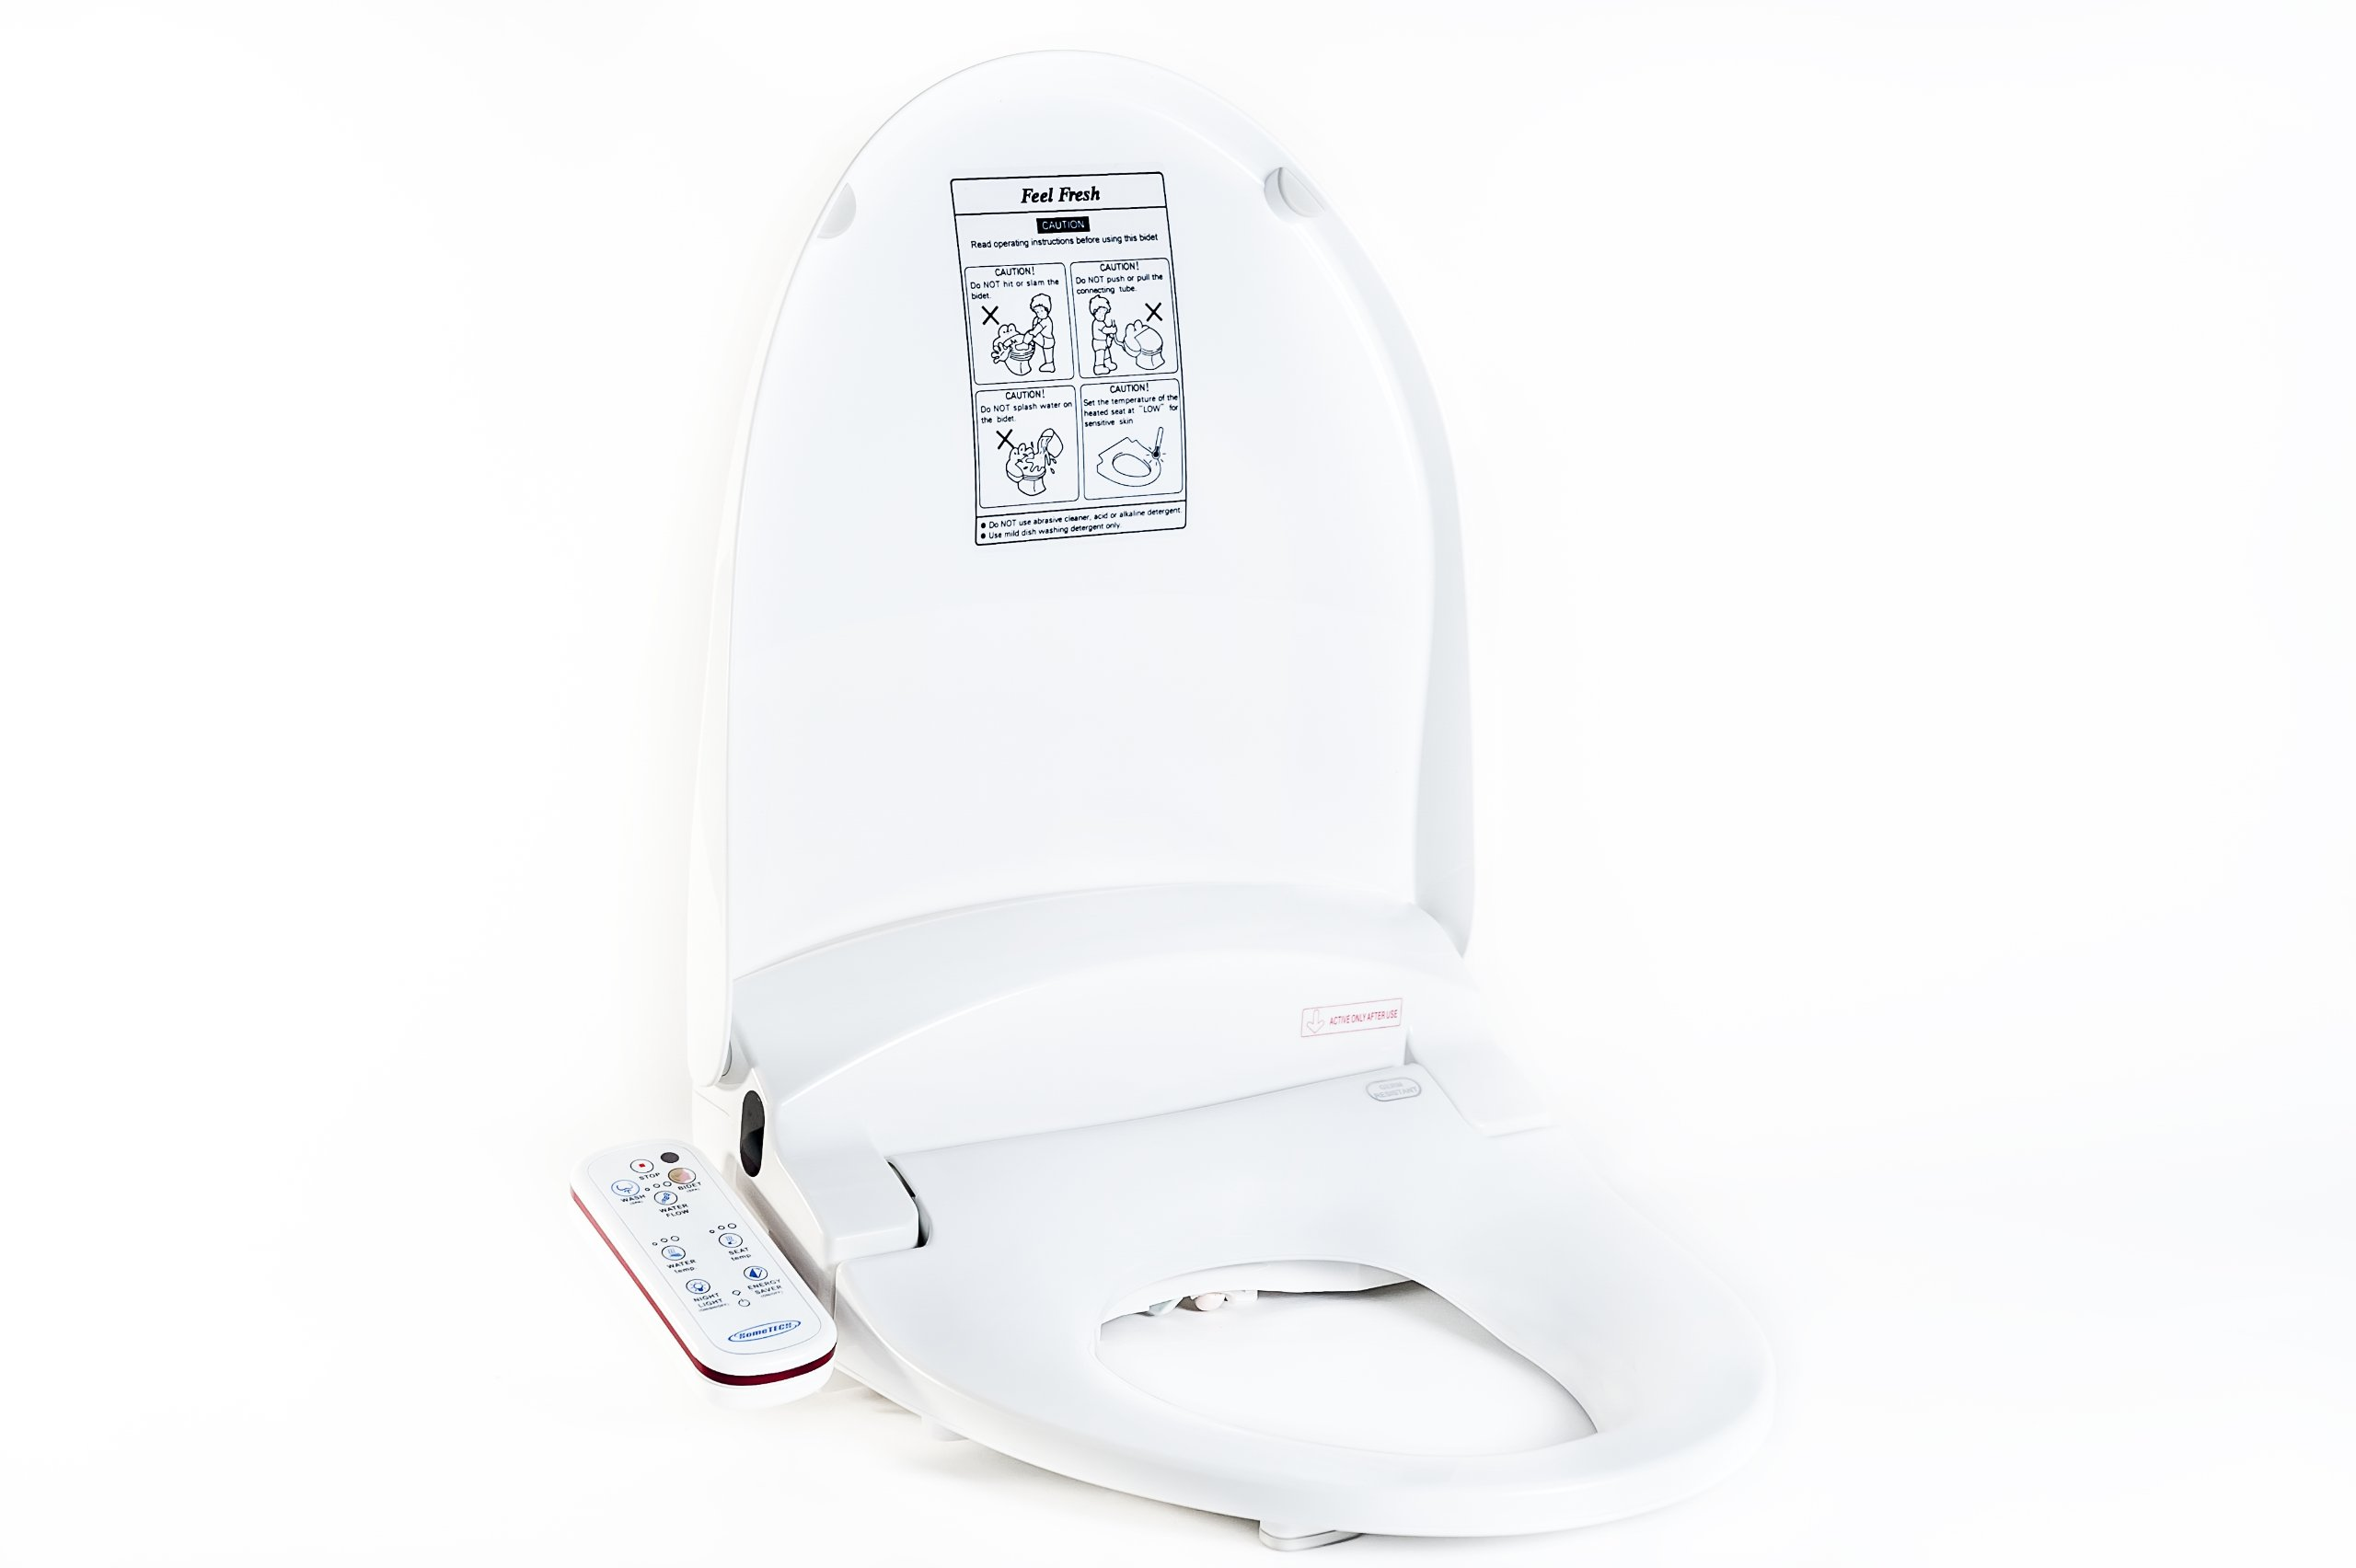 Feel Fresh HI-7001WT Elongated Electric Bidet Seat with Duo Mount Wireless Remote Control and Warm Air Dryer White